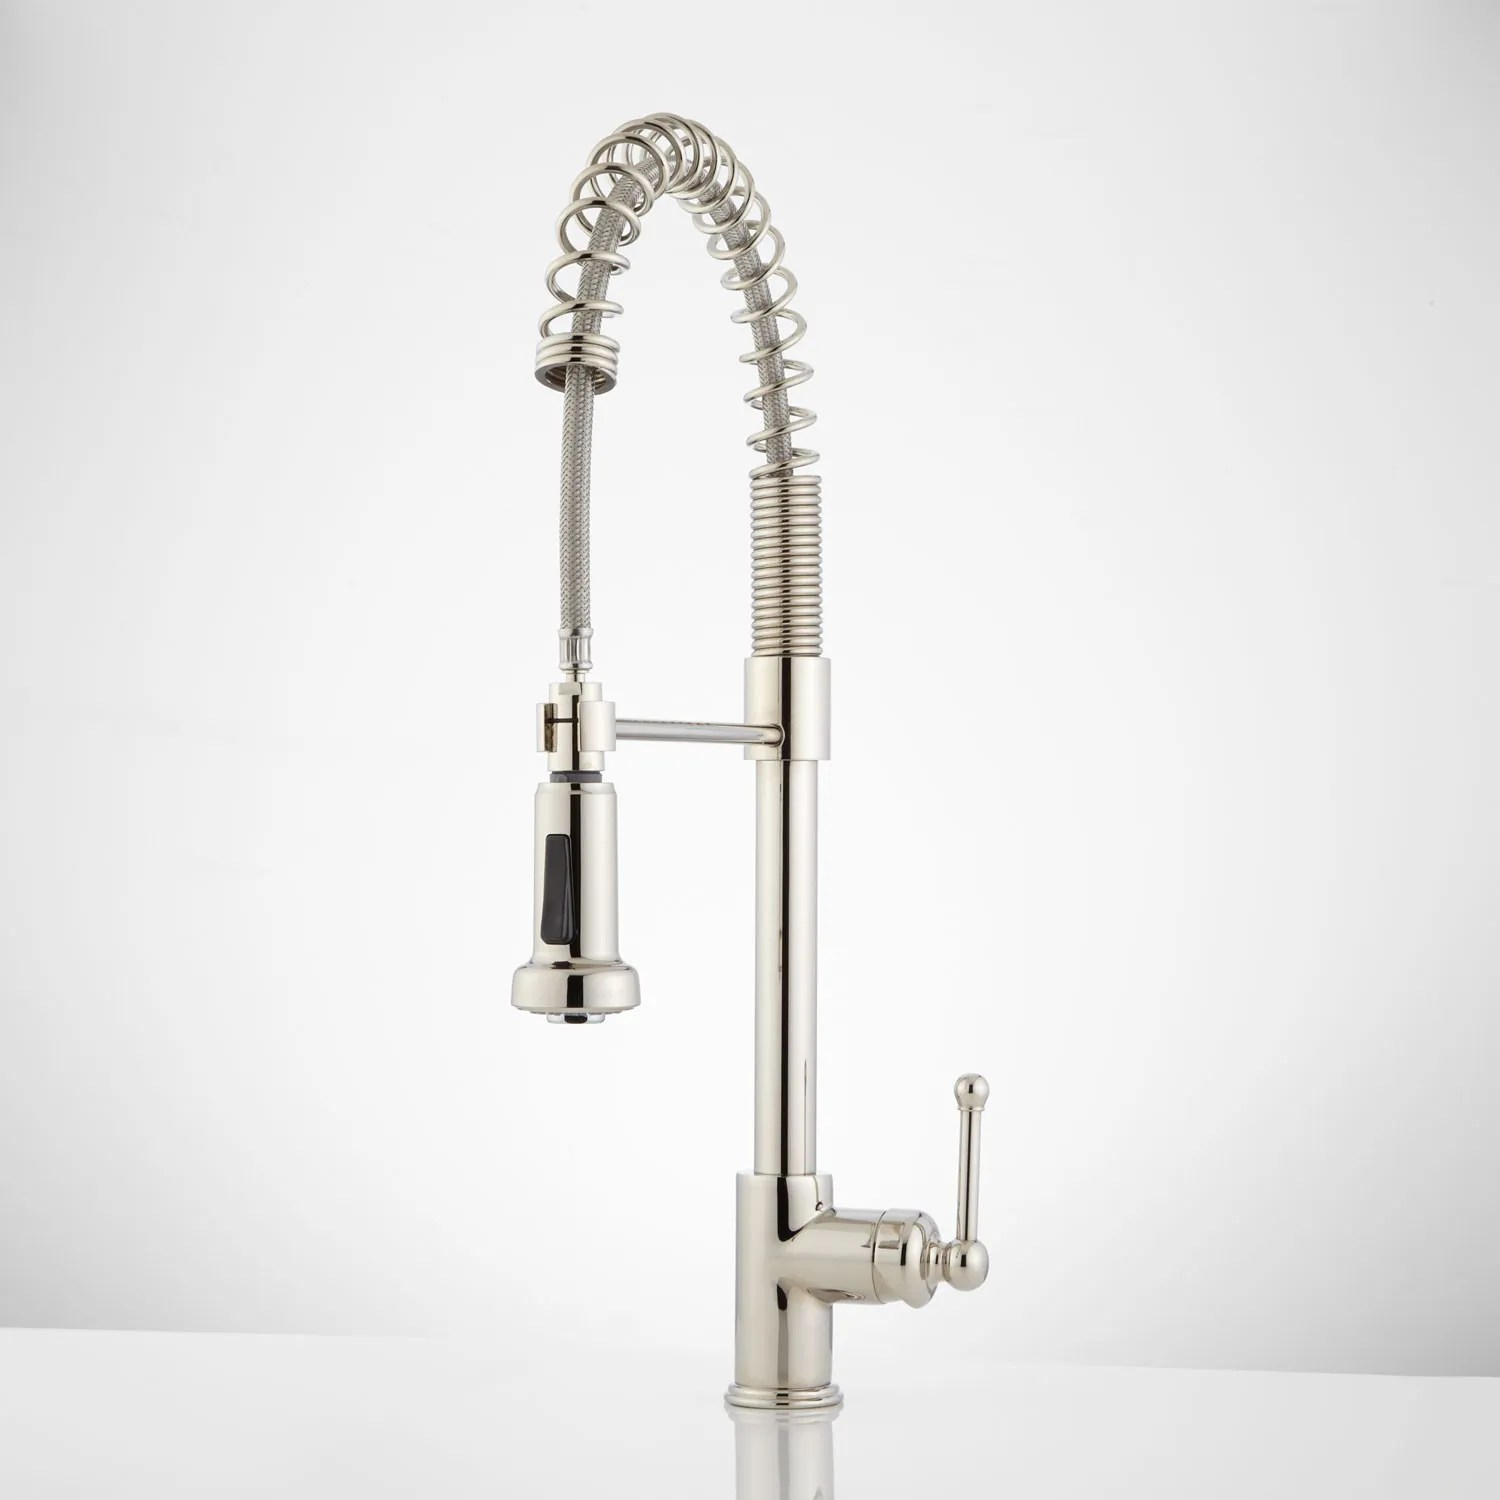 rachel pull down kitchen faucet with spring spout brushed nickel kitchen faucet Polished Nickel